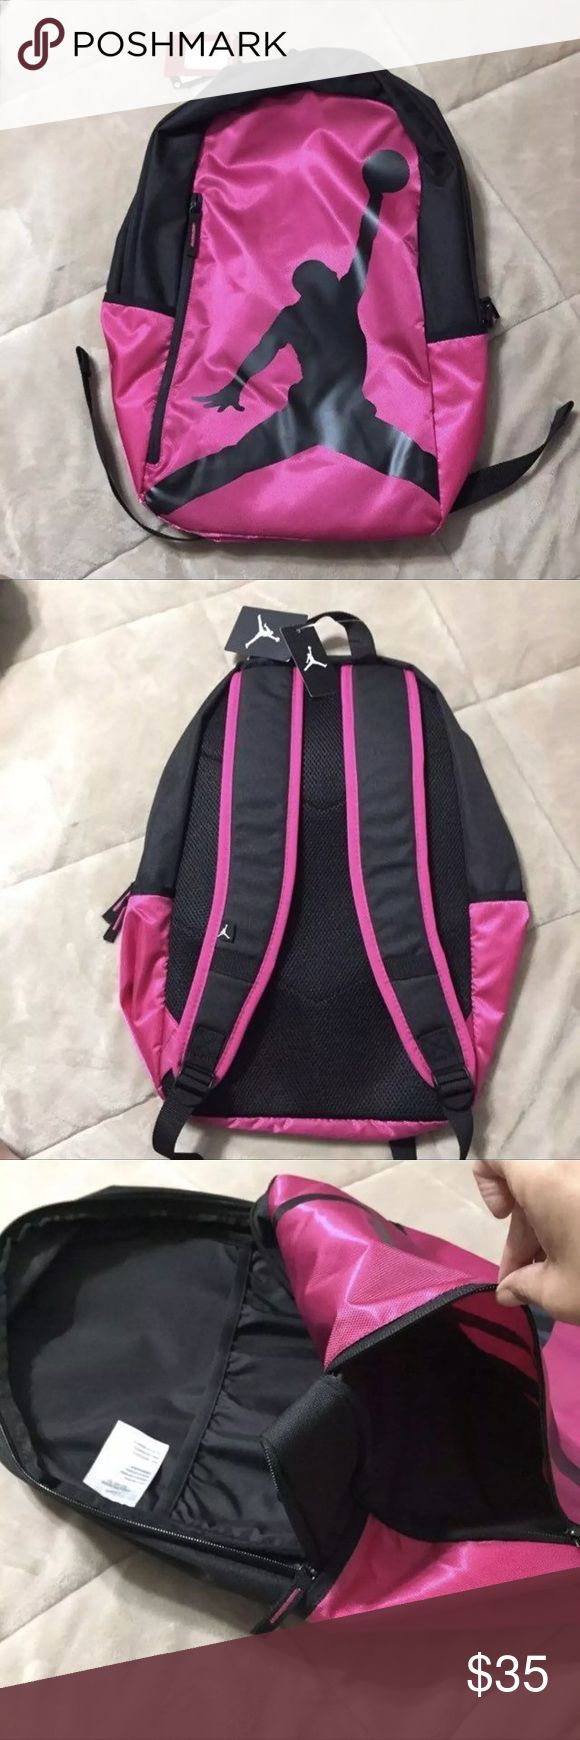 Jordan BookBag Pink NWT New with Tags! Ships Fast! Pink and Black Jordan  Girls , boys , Full Size Book bag With Laptop Storage  Large front storage pocket Bundle$Save! 19.5 tall 14.5 wide Accessories Bags